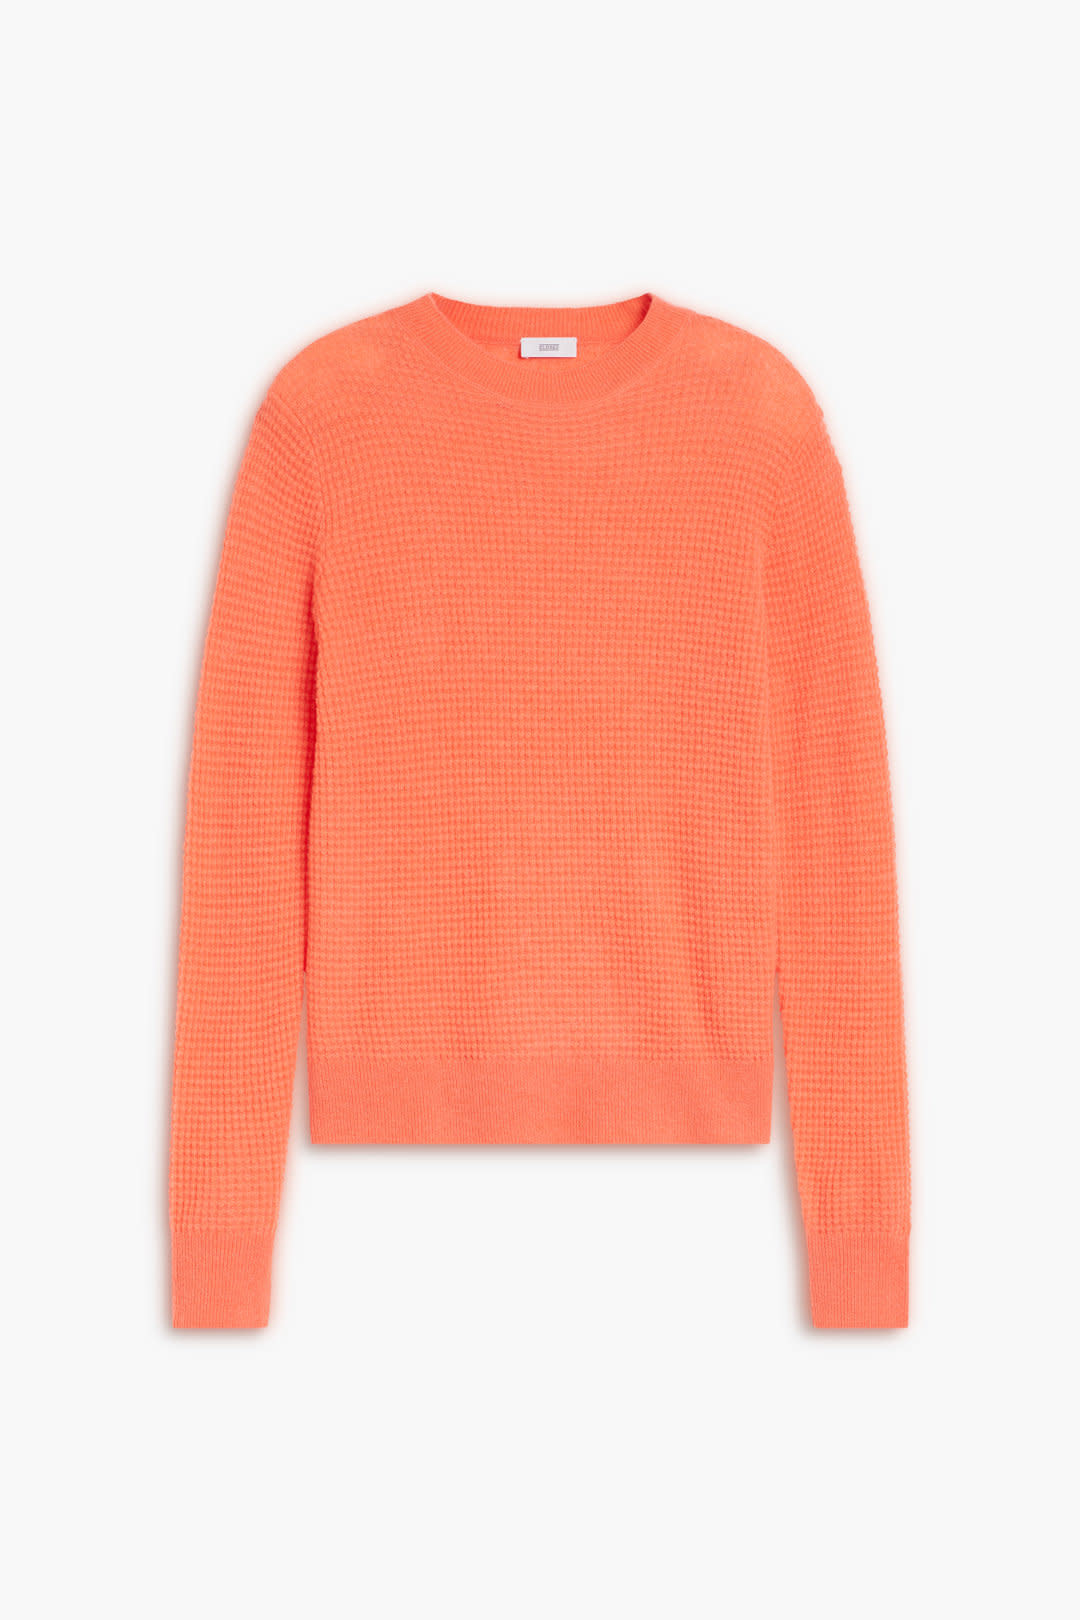 Knit strong coral-1